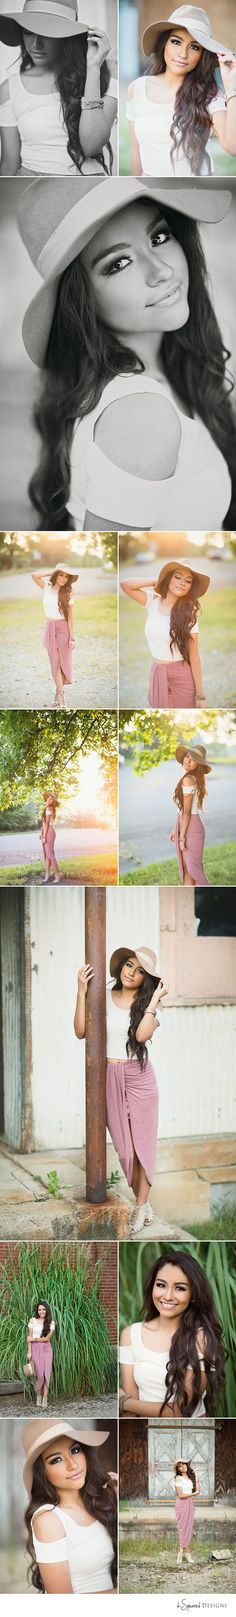 d-Squared Designs St. Louis, MO Senior Photography. Boho senior. Senior photography. Senior girl. Gorgeous senior.